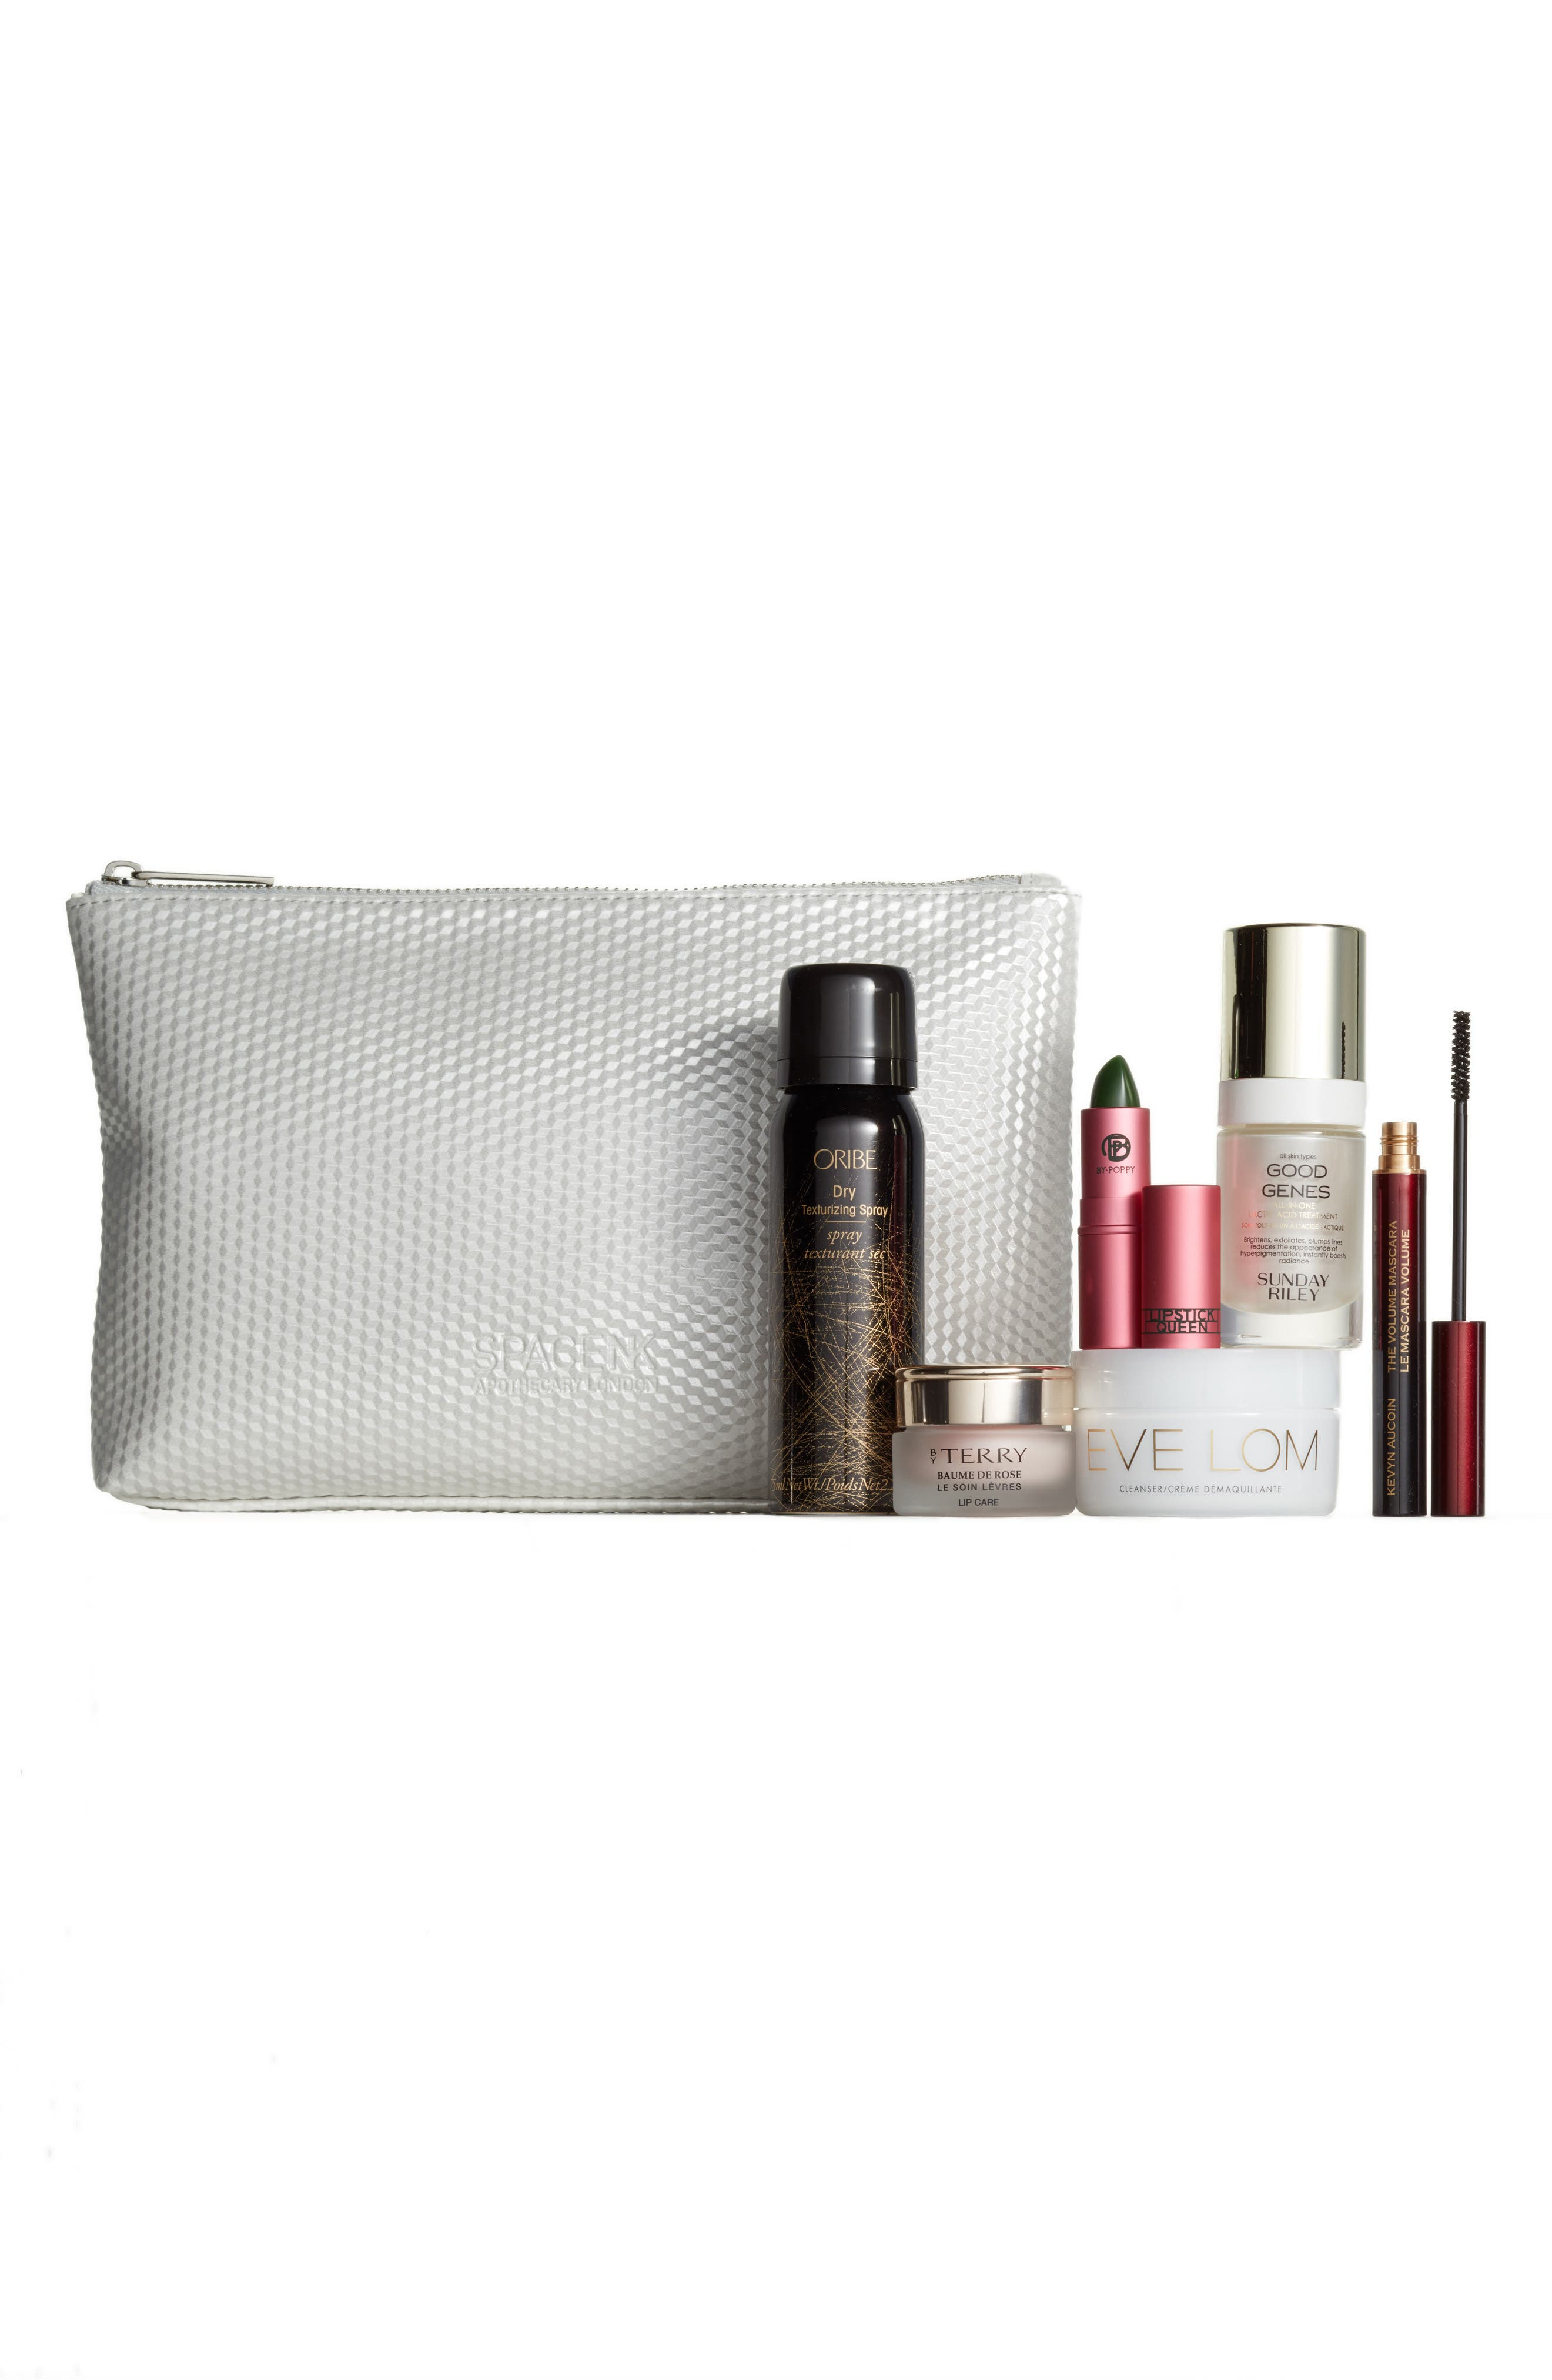 SPACE.NK.apothecary The Best of Collection ($237.50 Value)